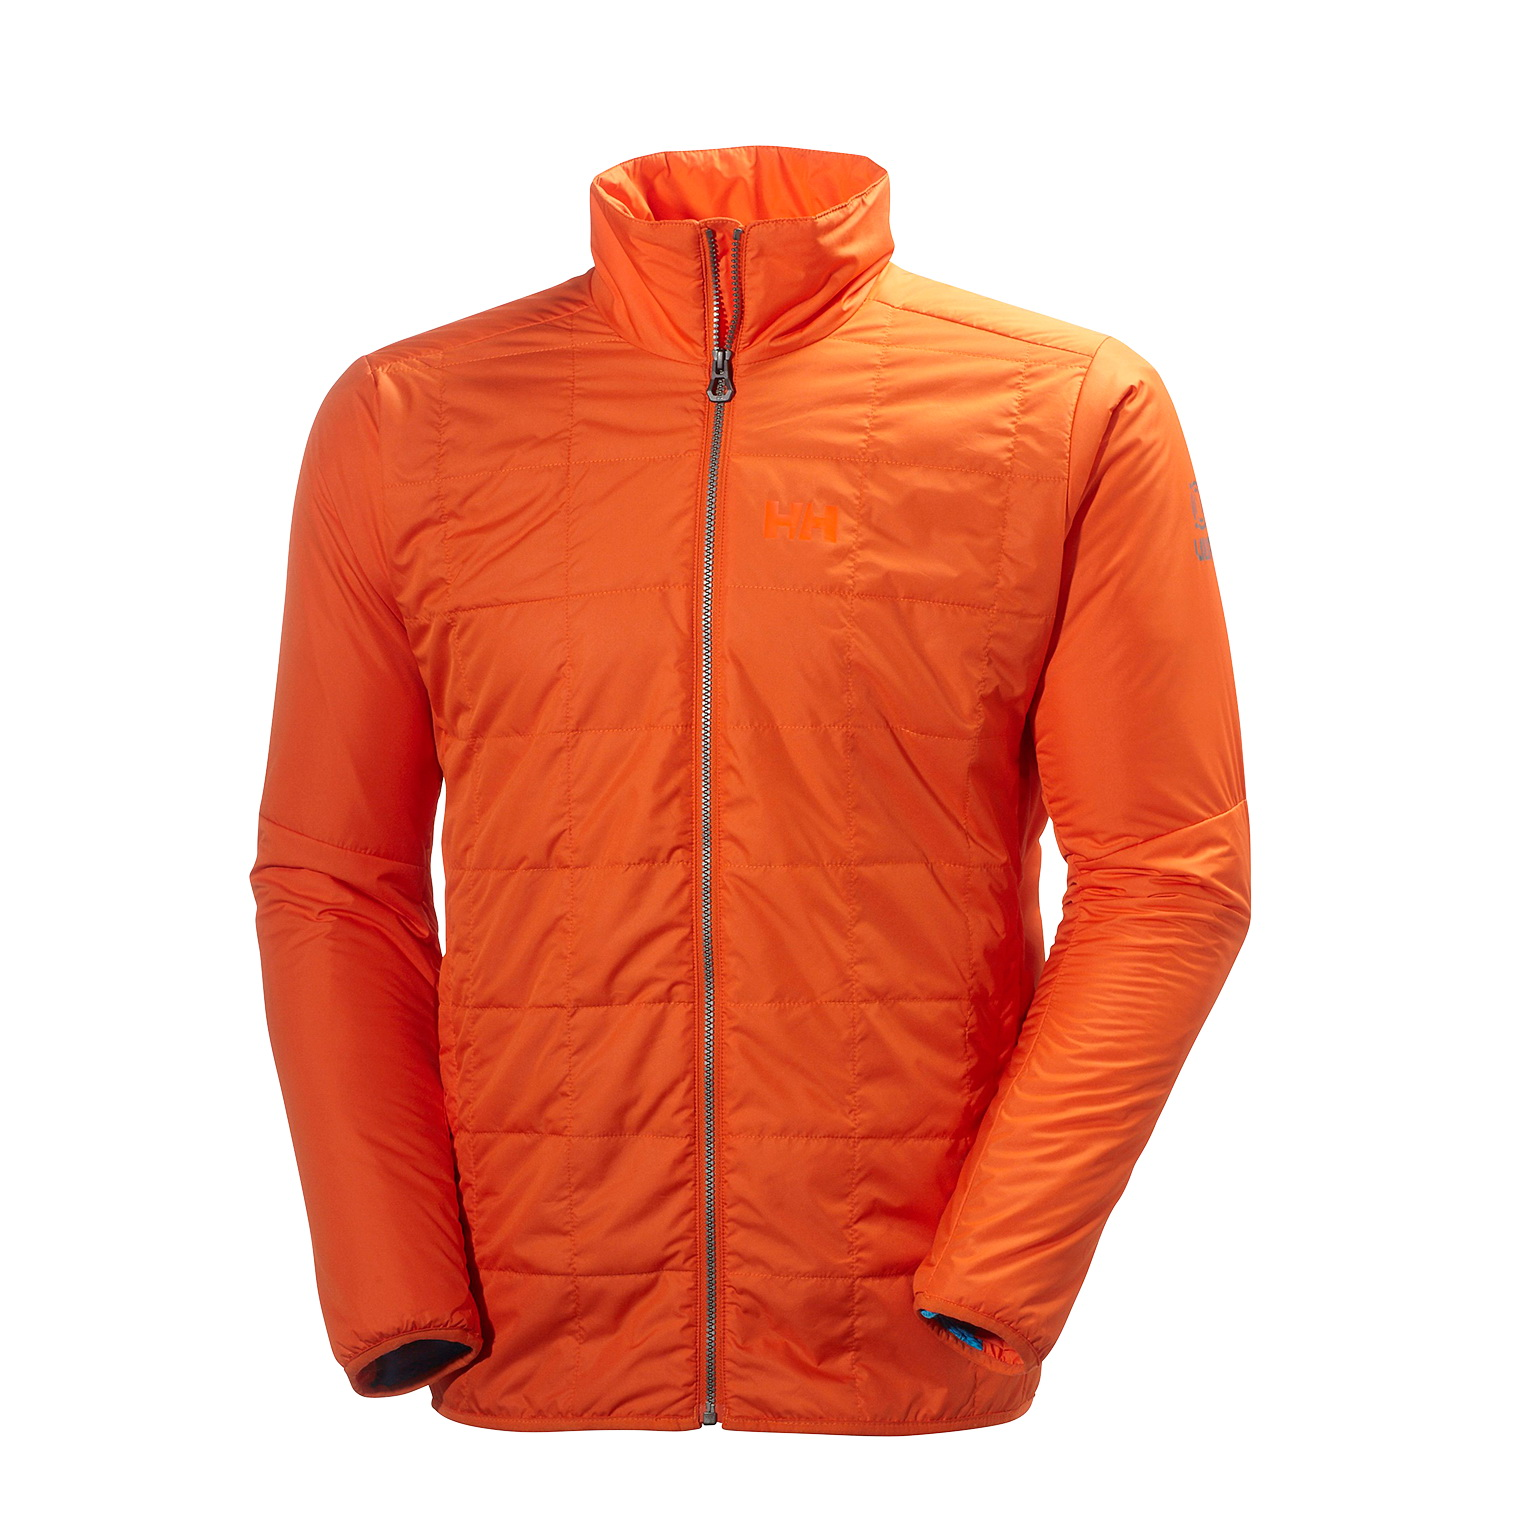 Куртка горнолыжная HELLY HANSEN Sogn Insulator Jacket Magma  (16/17)